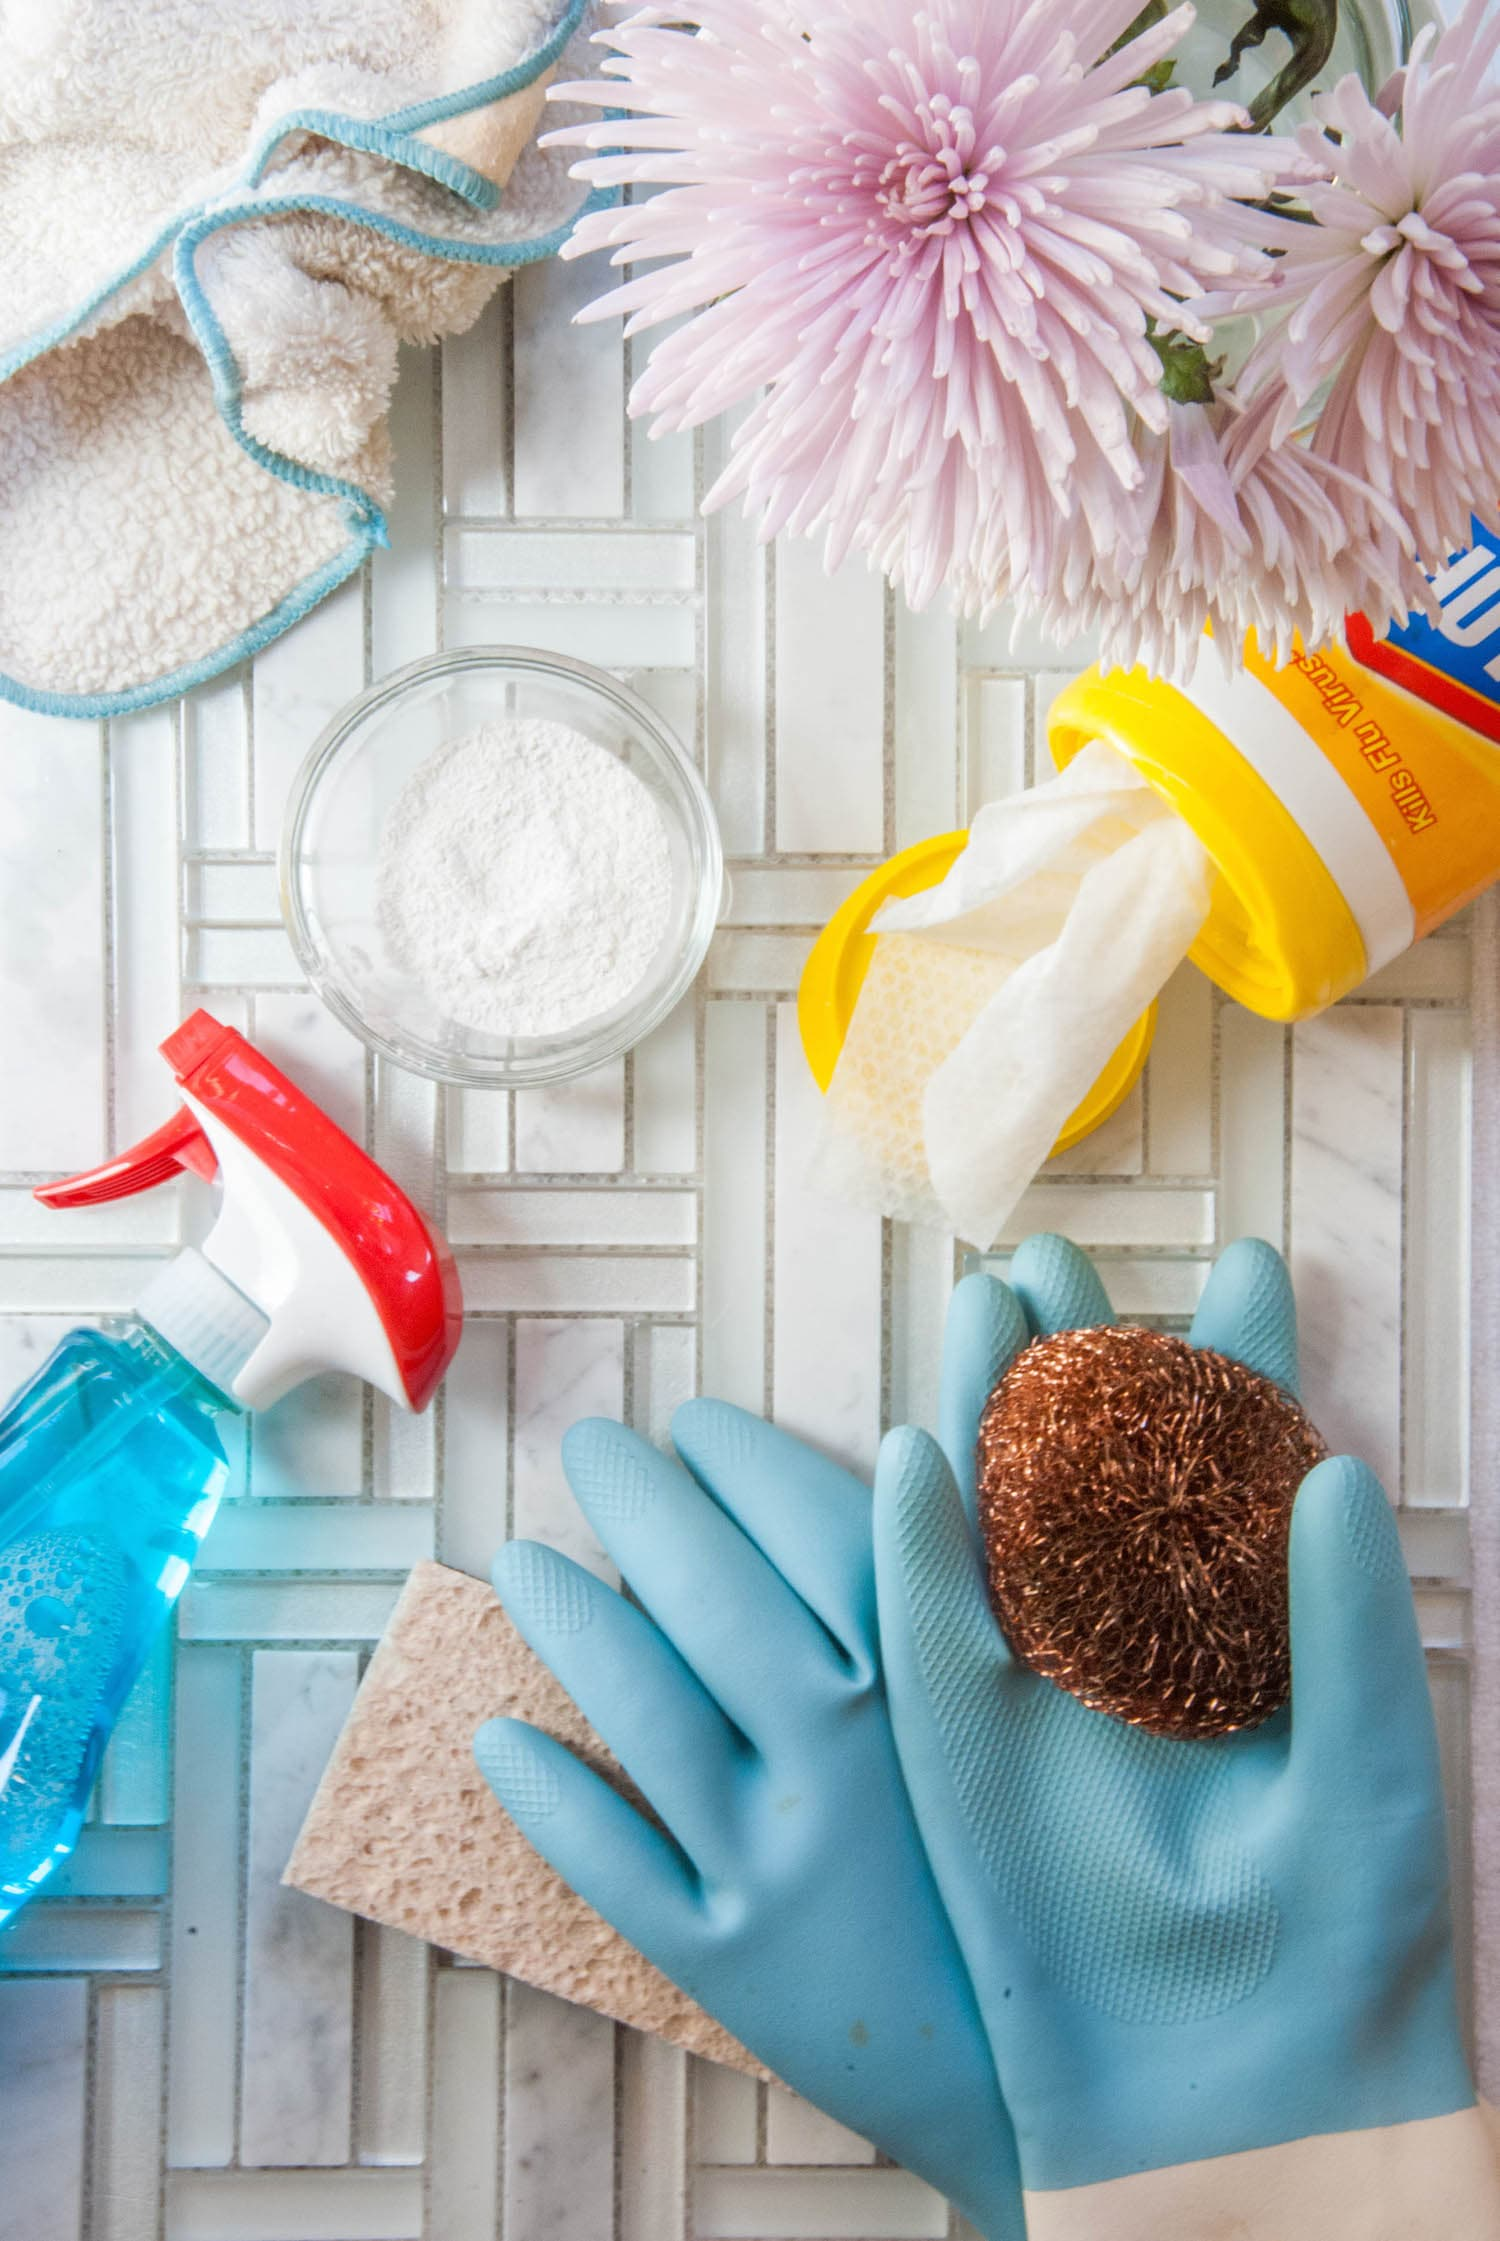 How a Chef Spring Cleans the Kitchen (+Free Checklist)